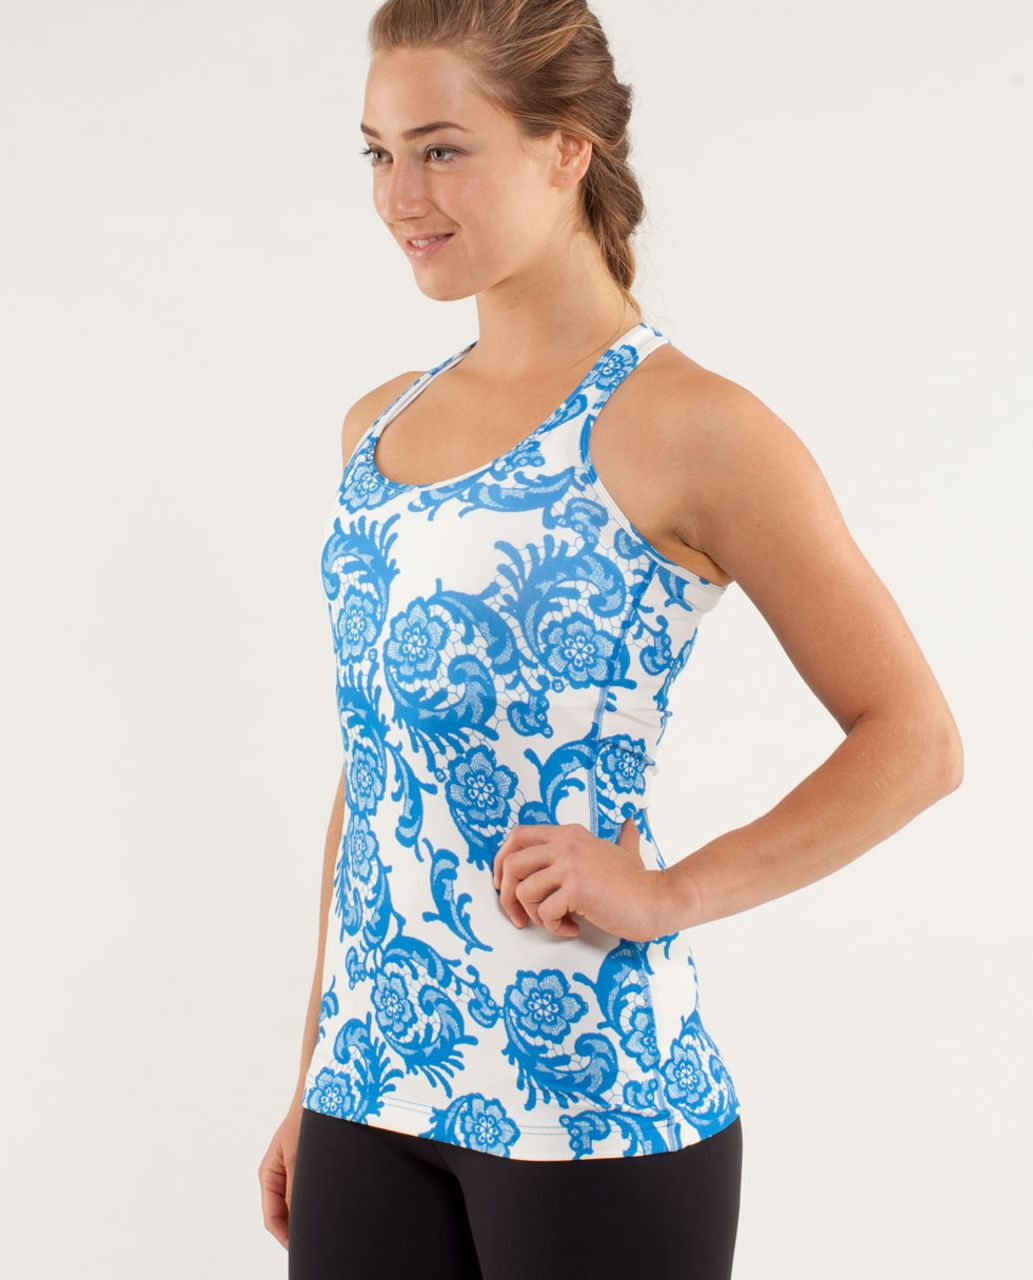 Lululemon Cool Racerback - Laceoflage Polar Cream Beaming Blue